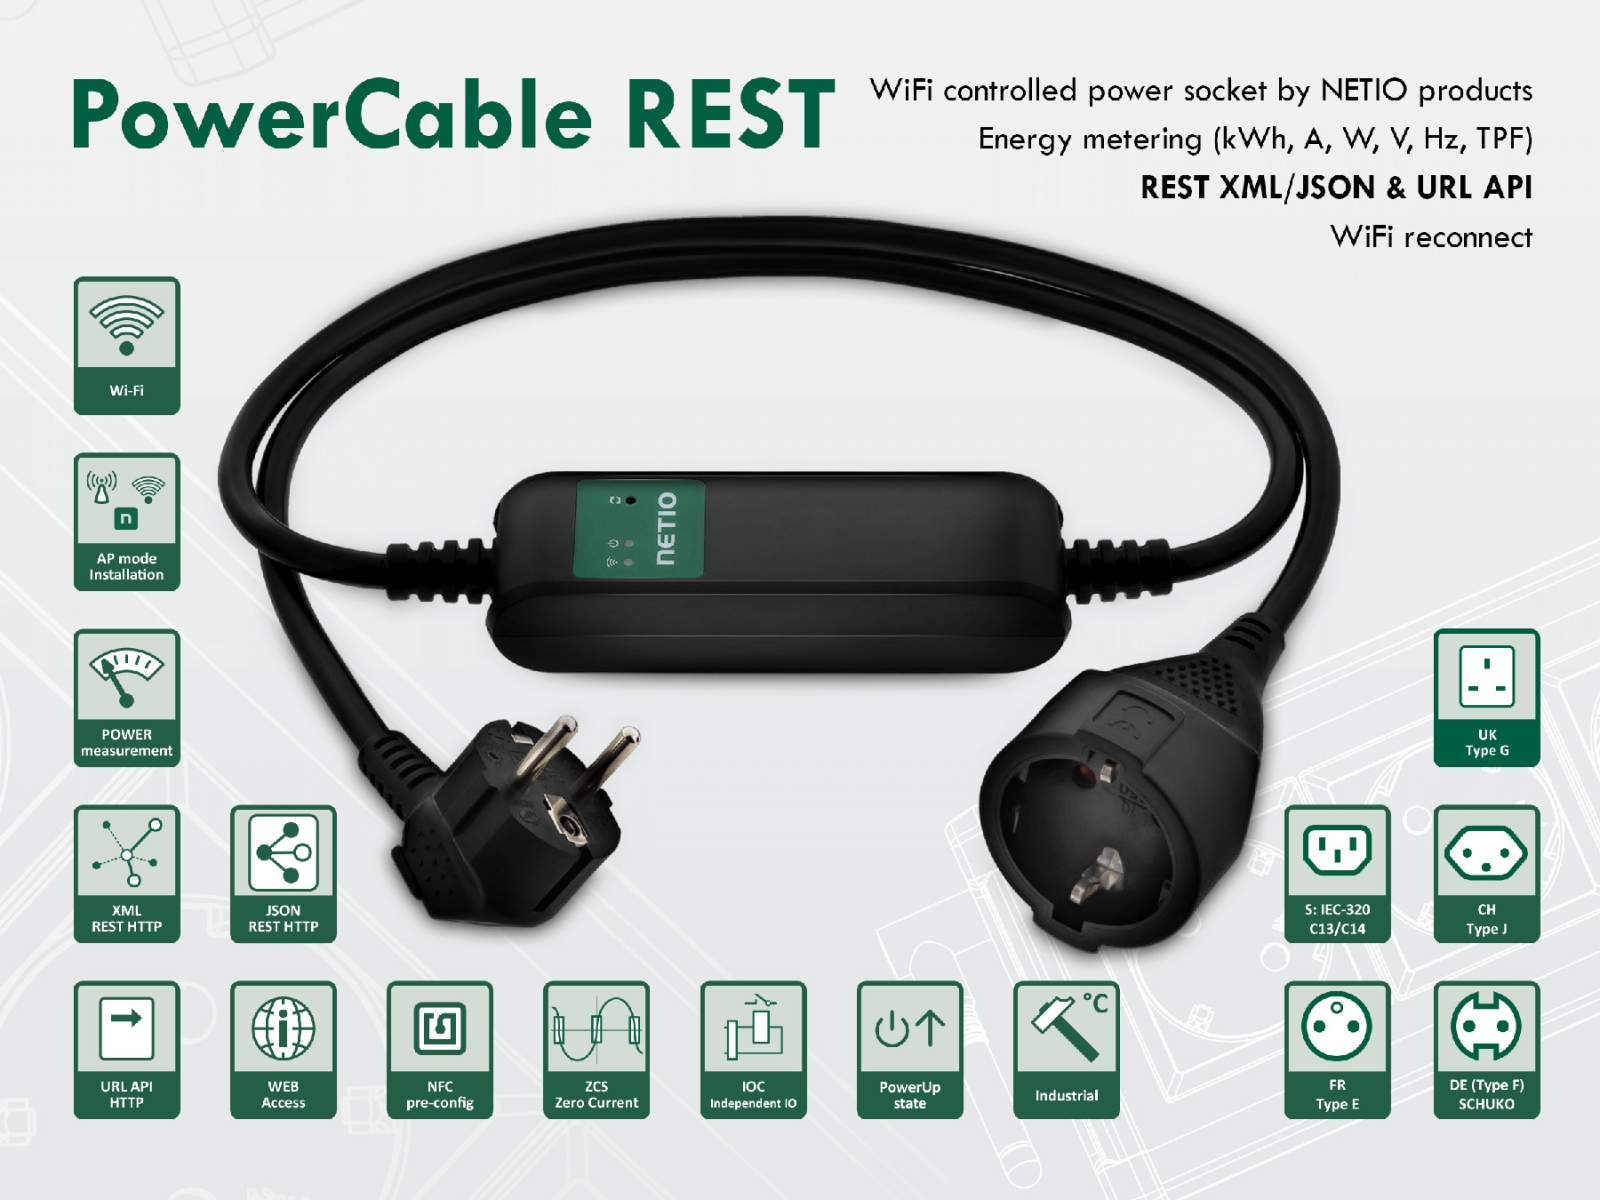 WiFi controlled PowerCable REST Type F (DE, schuko) with Open API